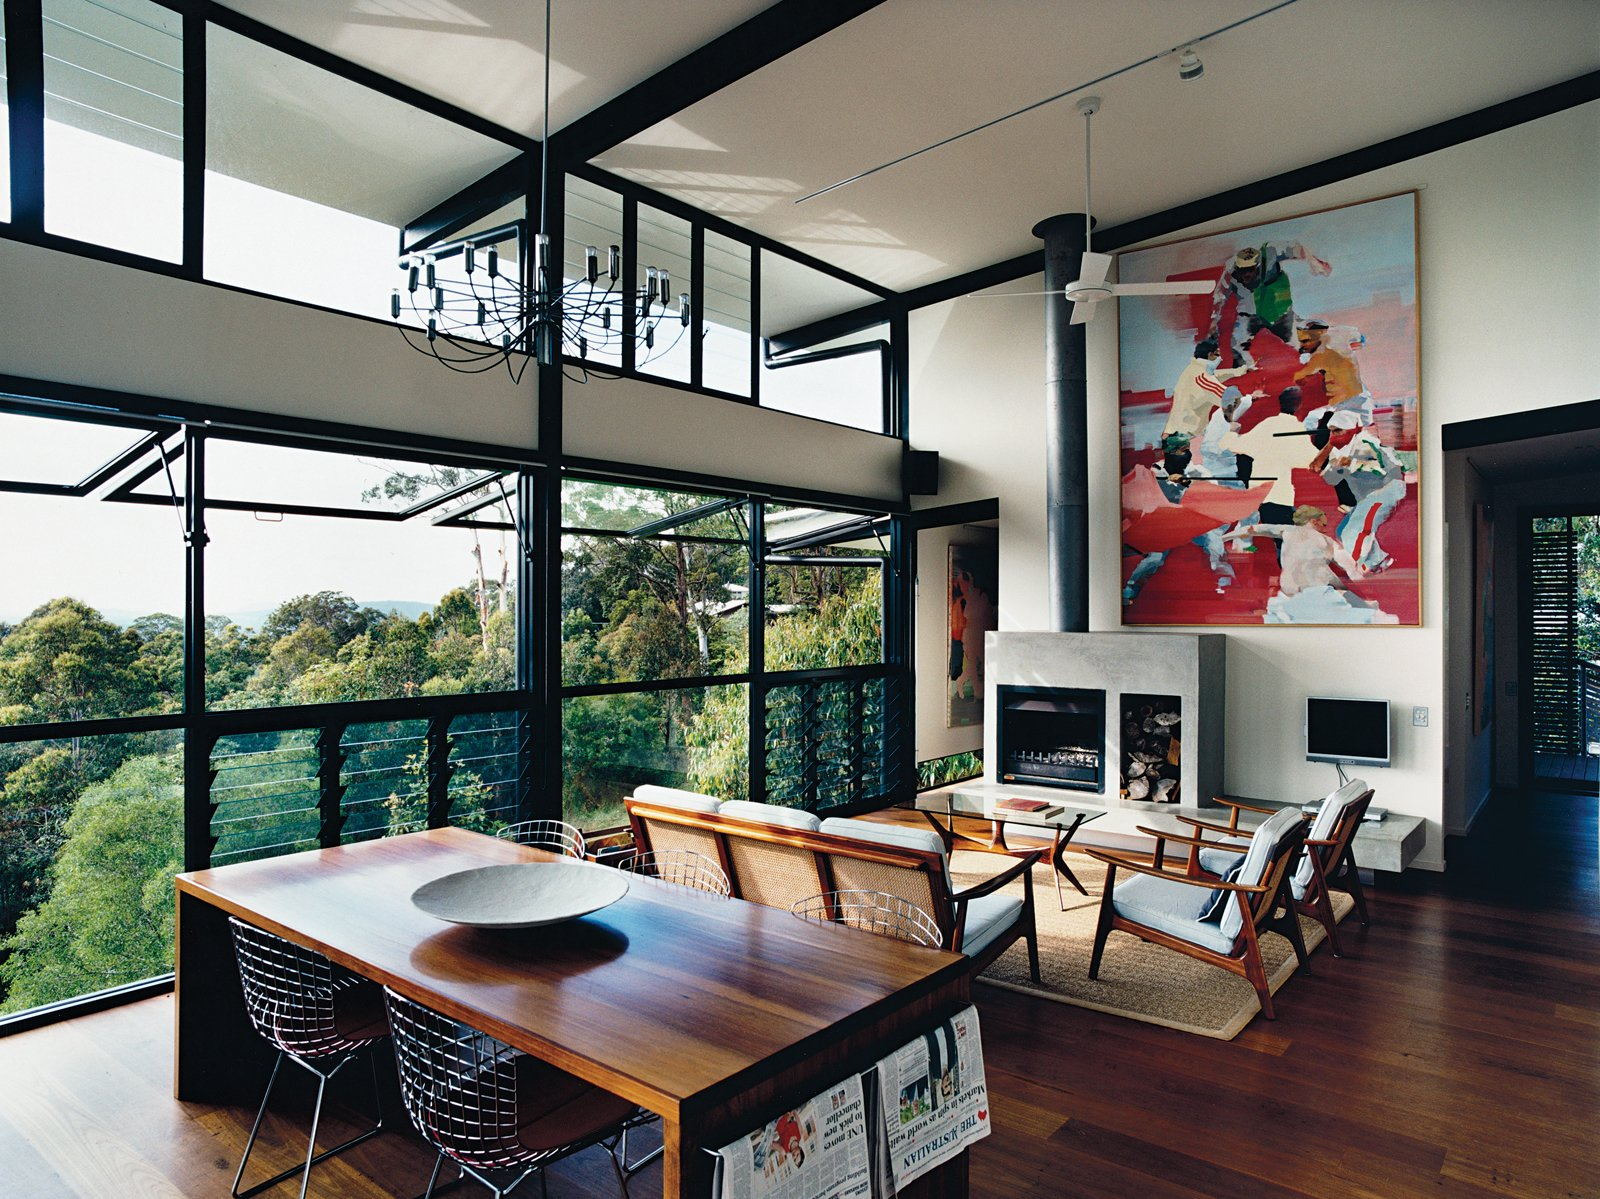 The open-plan living room was inspired by the couple's previous residence, a London loft. The paintings are by Dunlop. The louvered floor-to-ceiling windows, ceiling fan, and sliding deck doors usher in sea breezes and encourage good air circulation. Tagged: Living Room, Medium Hardwood Floor, Standard Layout Fireplace, Chair, Wood Burning Fireplace, Pendant Lighting, and Sofa.  Photo 4 of 12 in Hillside Family Home in Australia